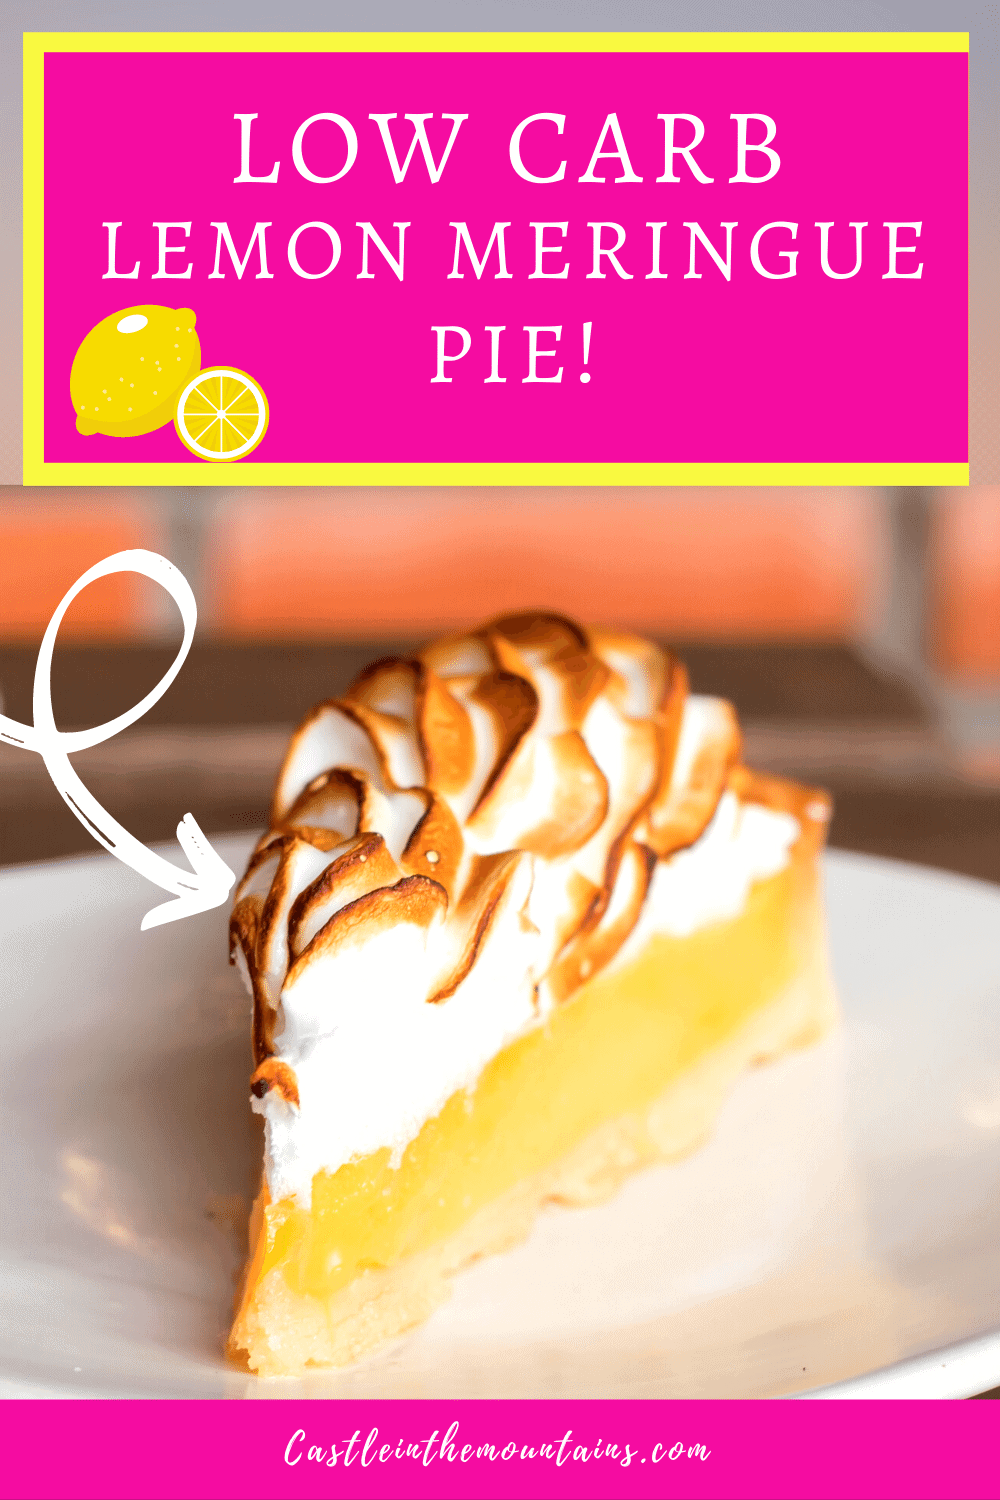 Lemon Meringue Pie - How to make Keto Lemon Pie!